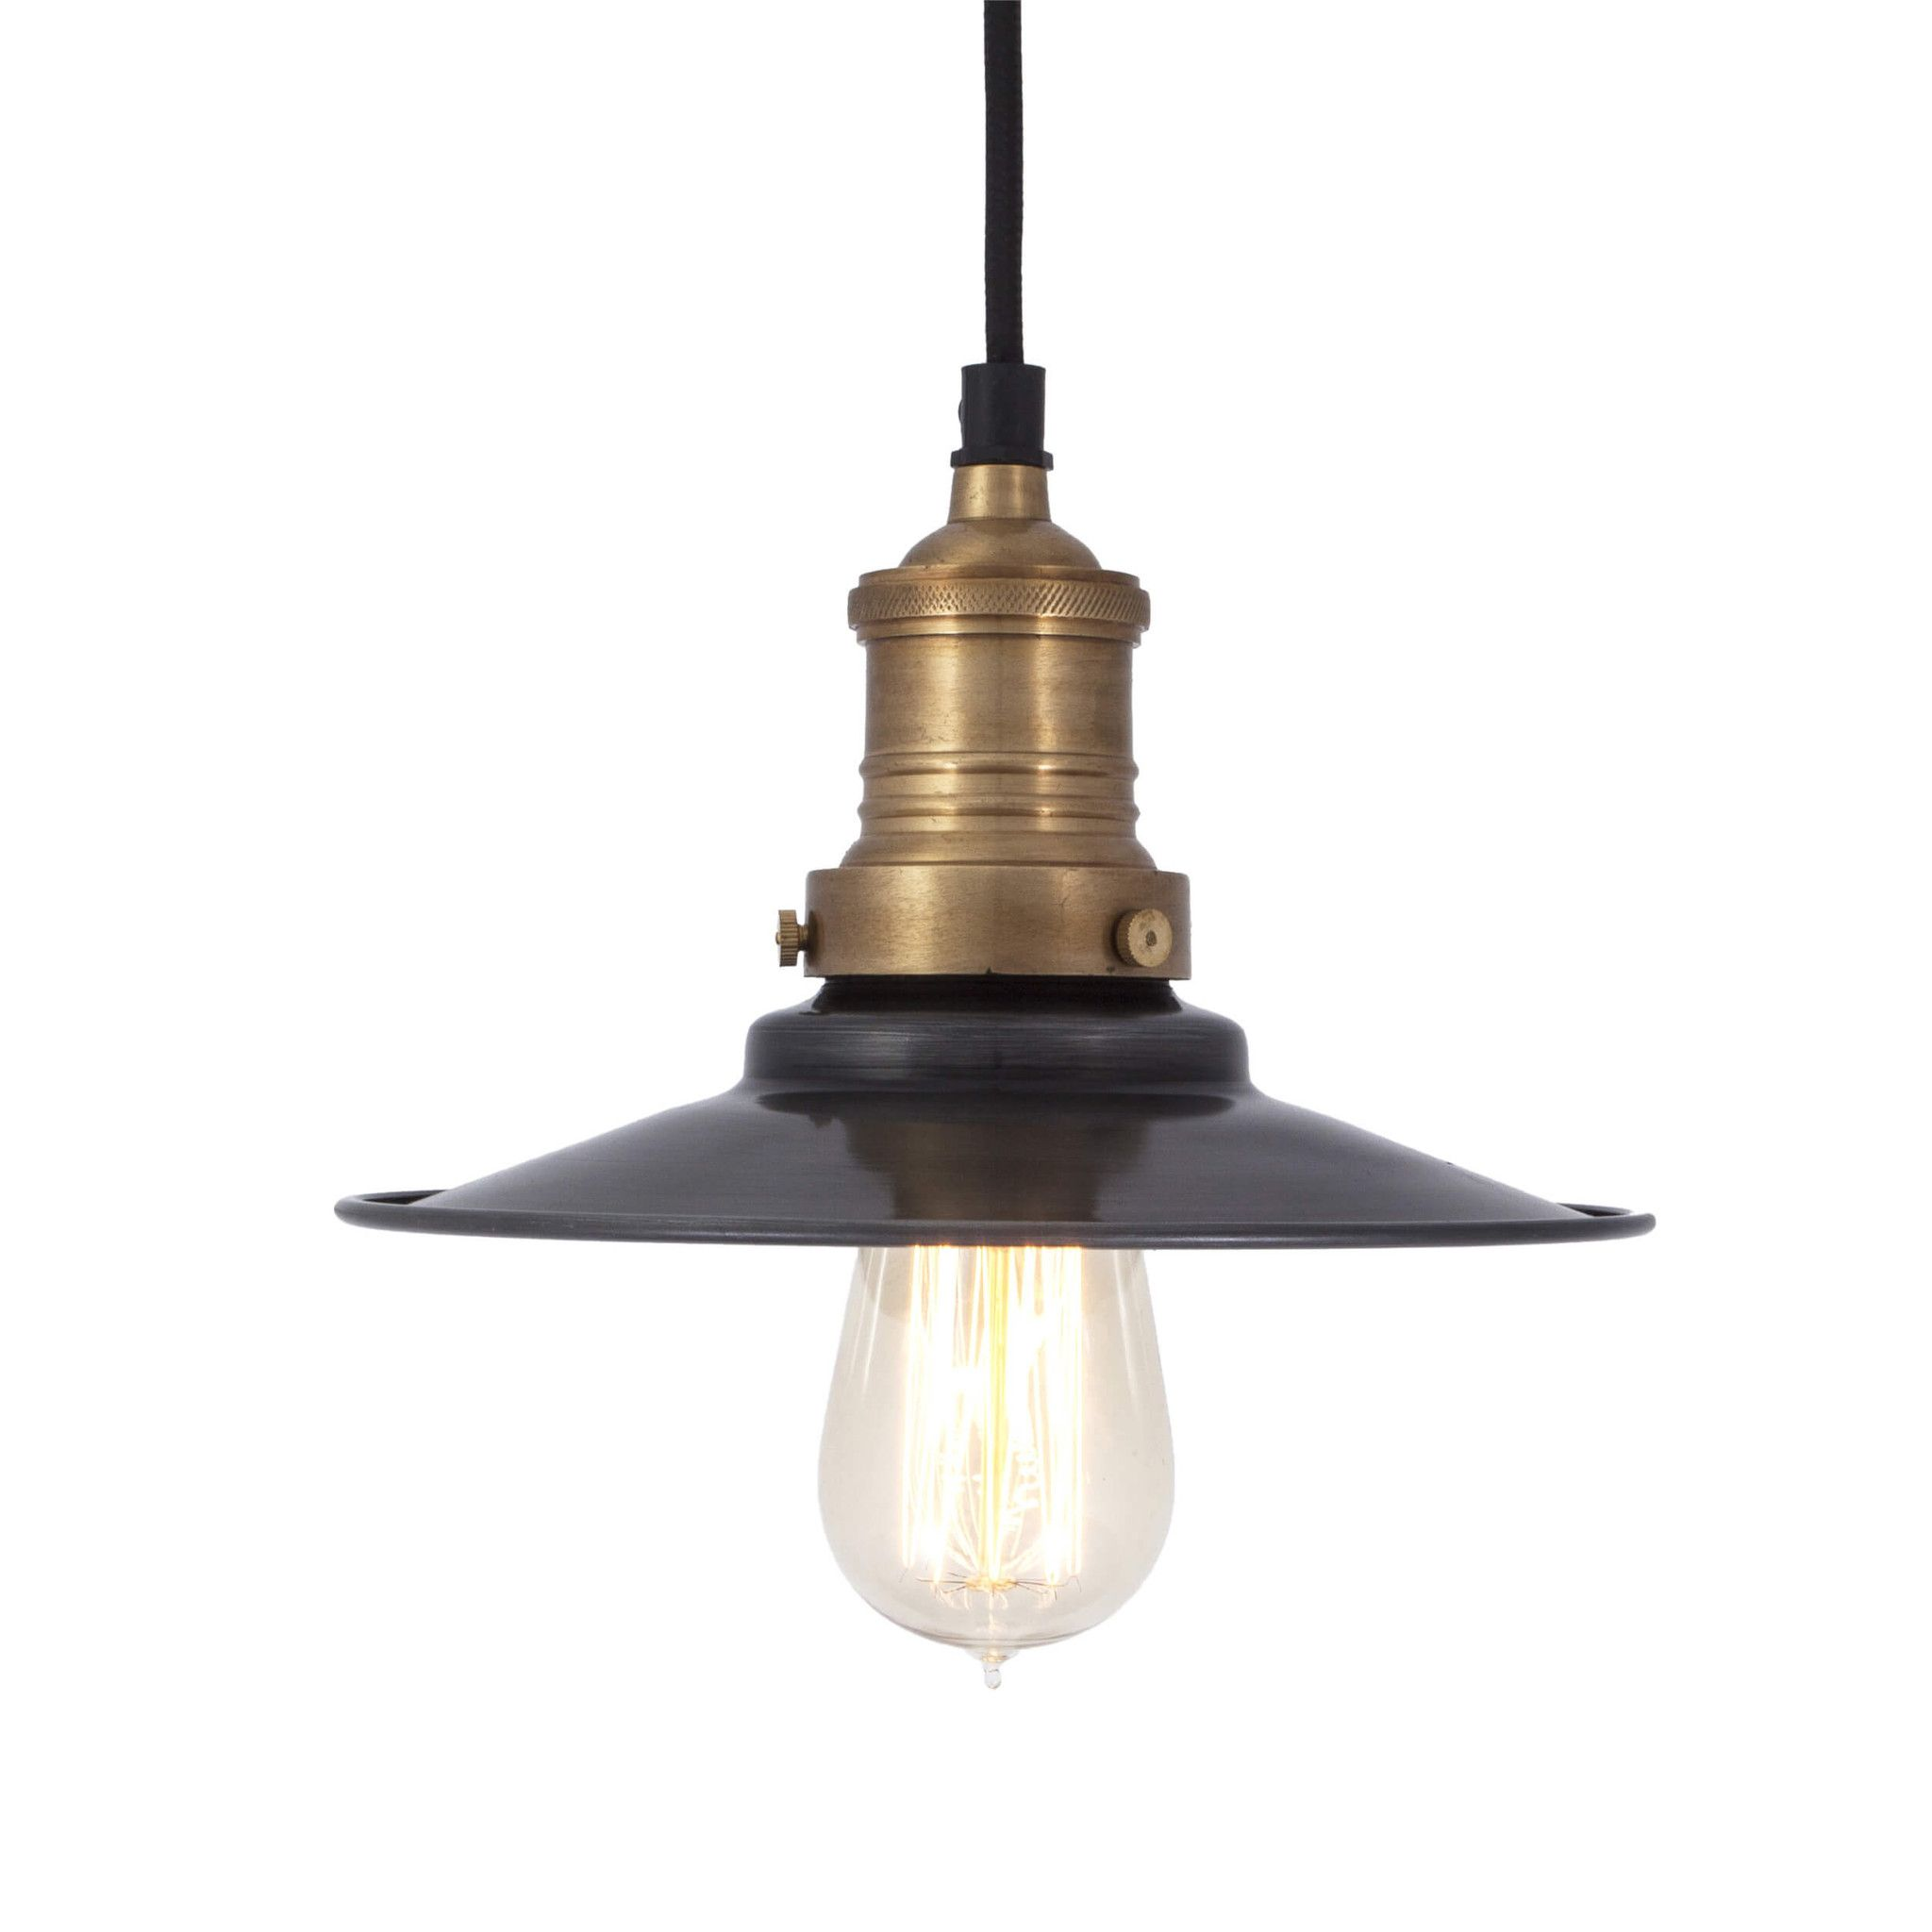 Brooklyn antique flat industrial pendant light dark pewter